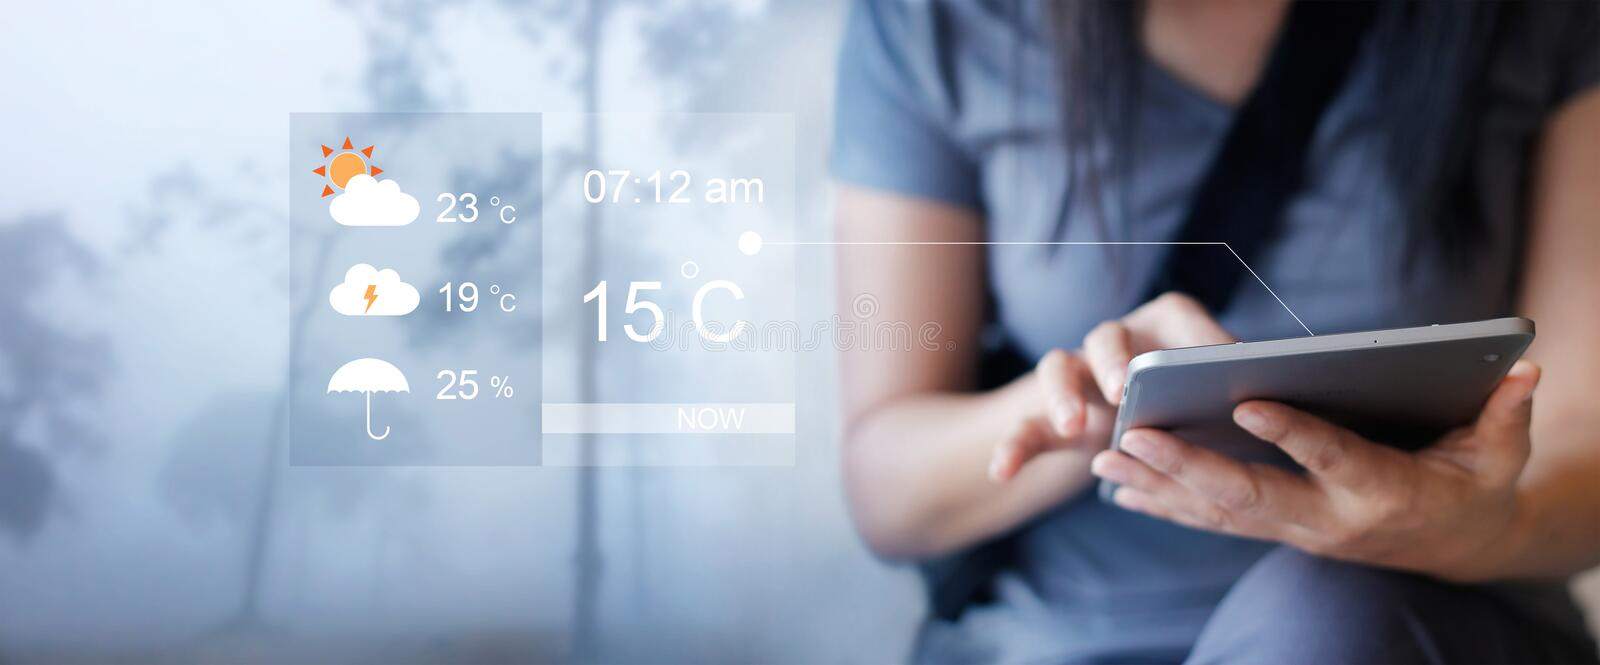 Woman checking up weather forecast from tablet application royalty free stock photos